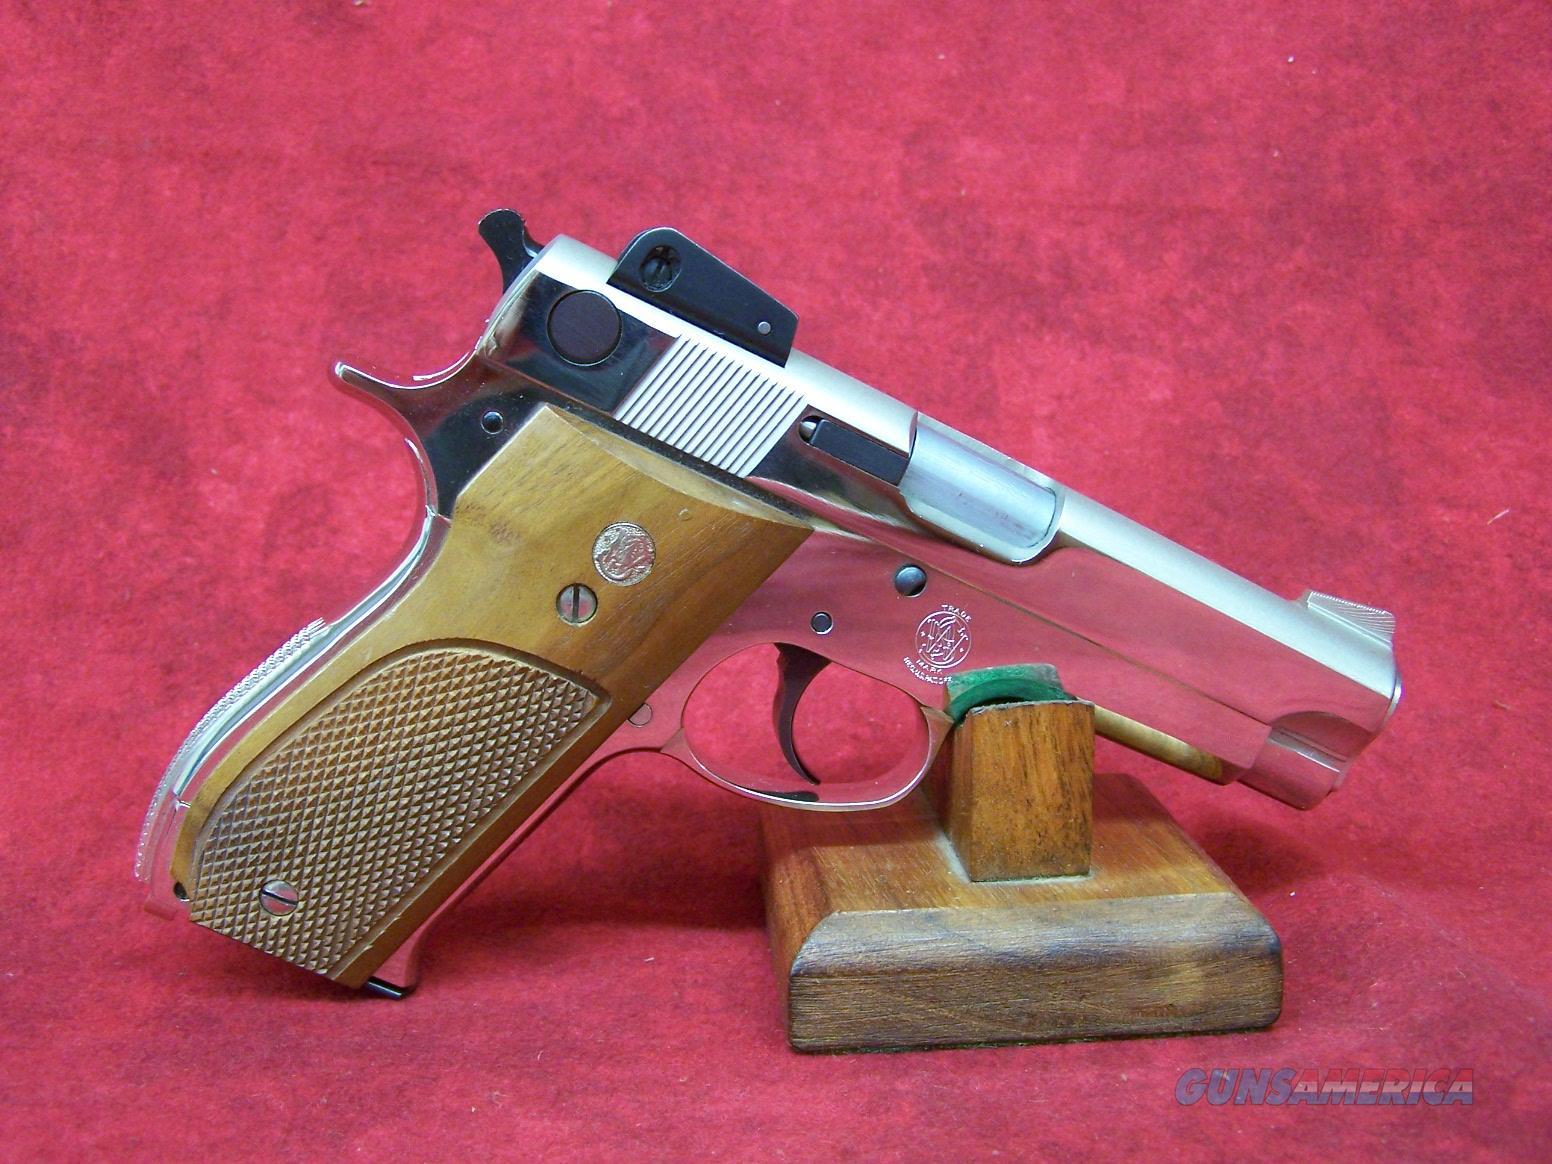 Smith & Wesson 539 9mm Bright Nickel  Guns > Pistols > Smith & Wesson Pistols - Autos > Steel Frame